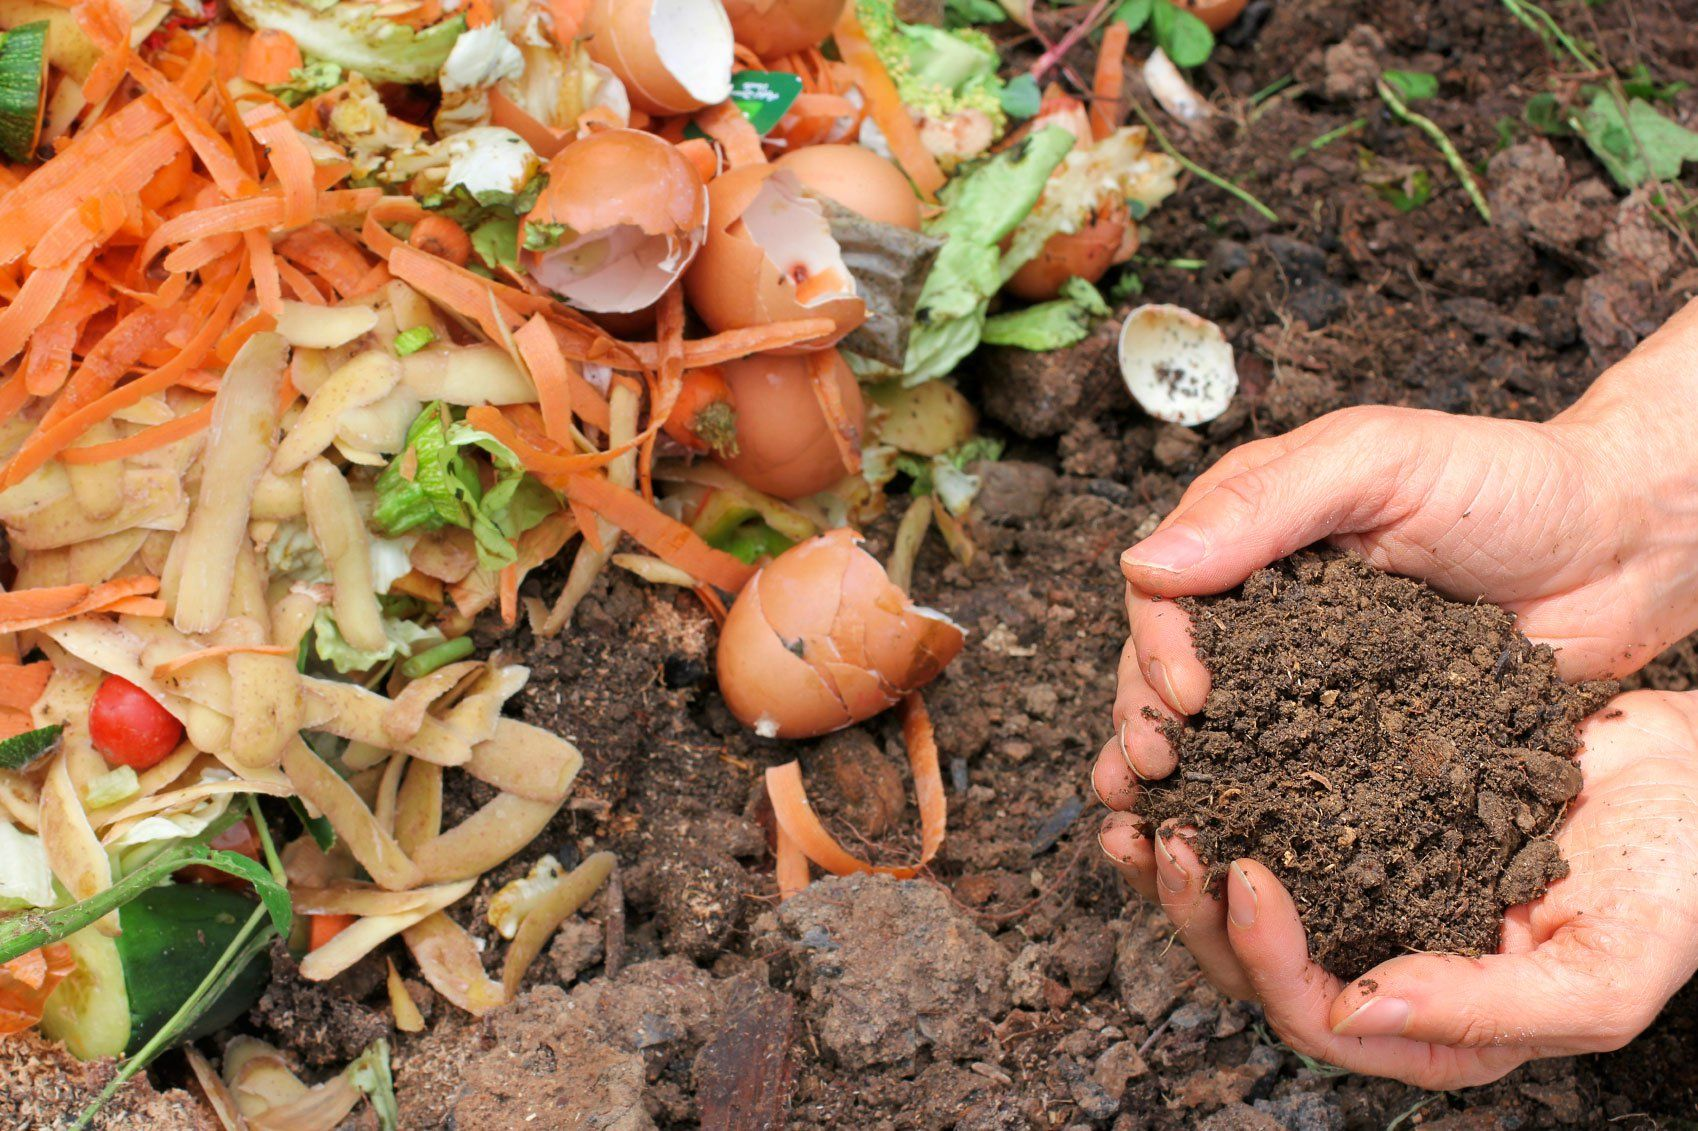 Instructions For Composting - How To Start Compost For Gardens